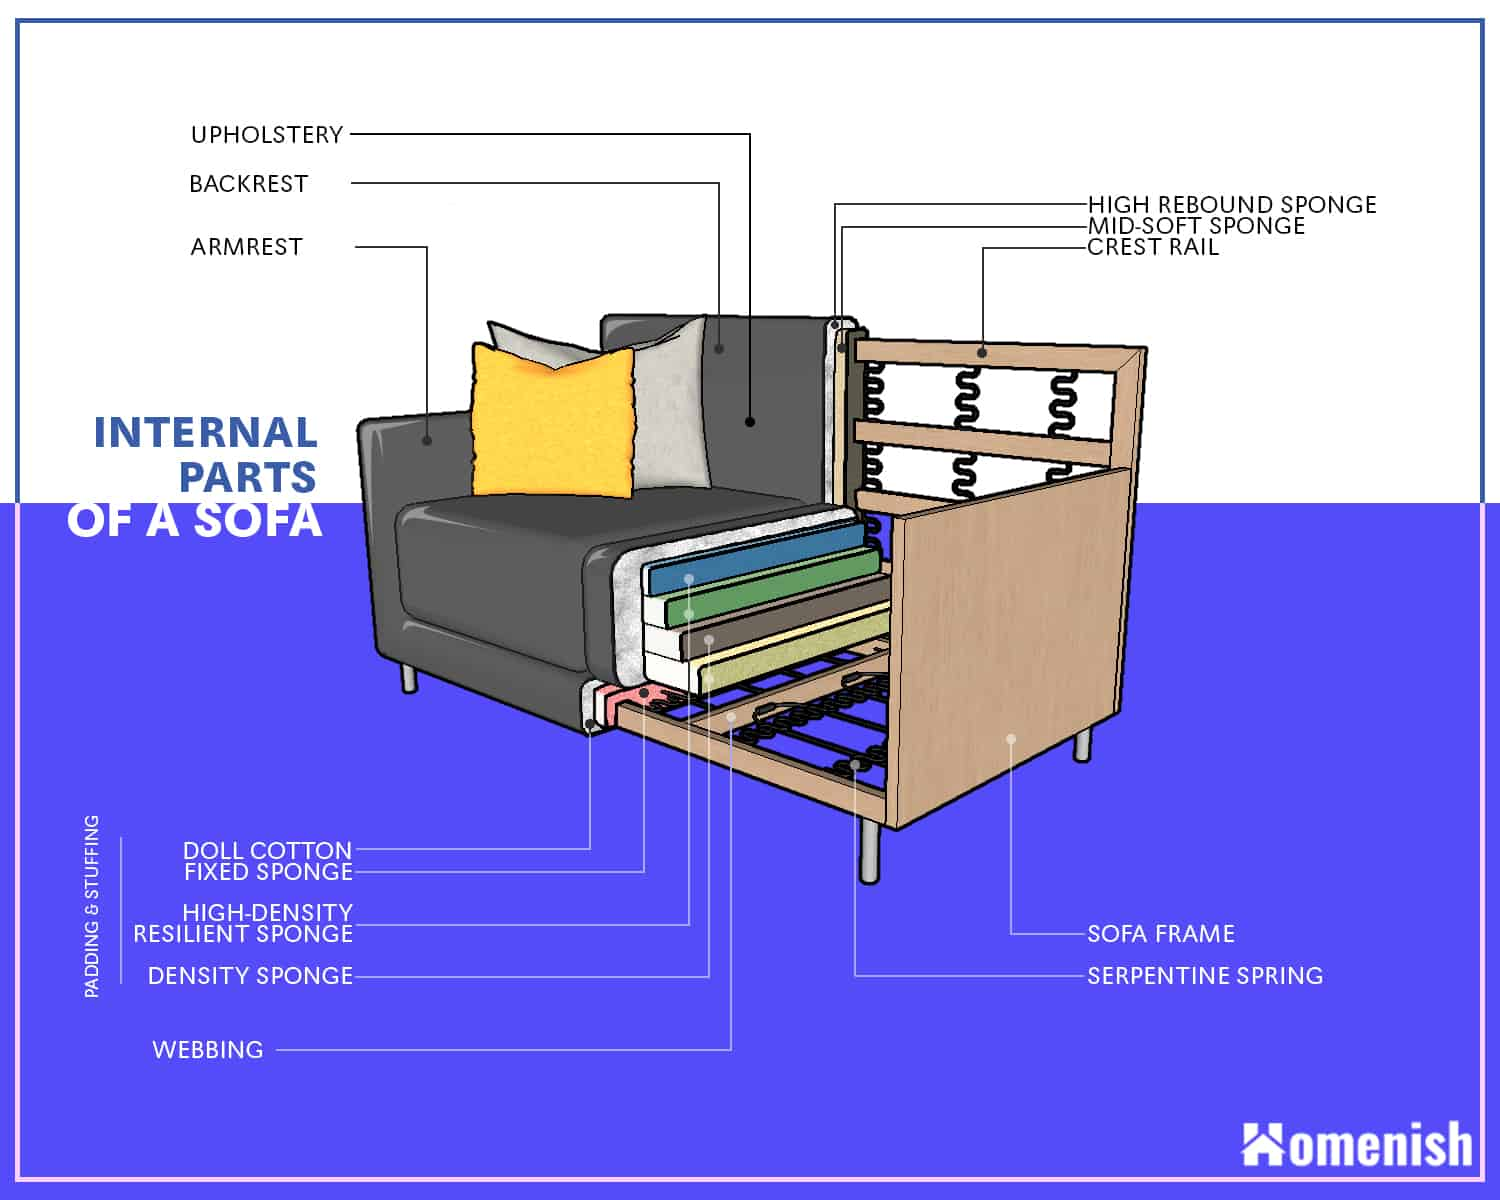 Internal Parts of a Sofa and Couch Diagram